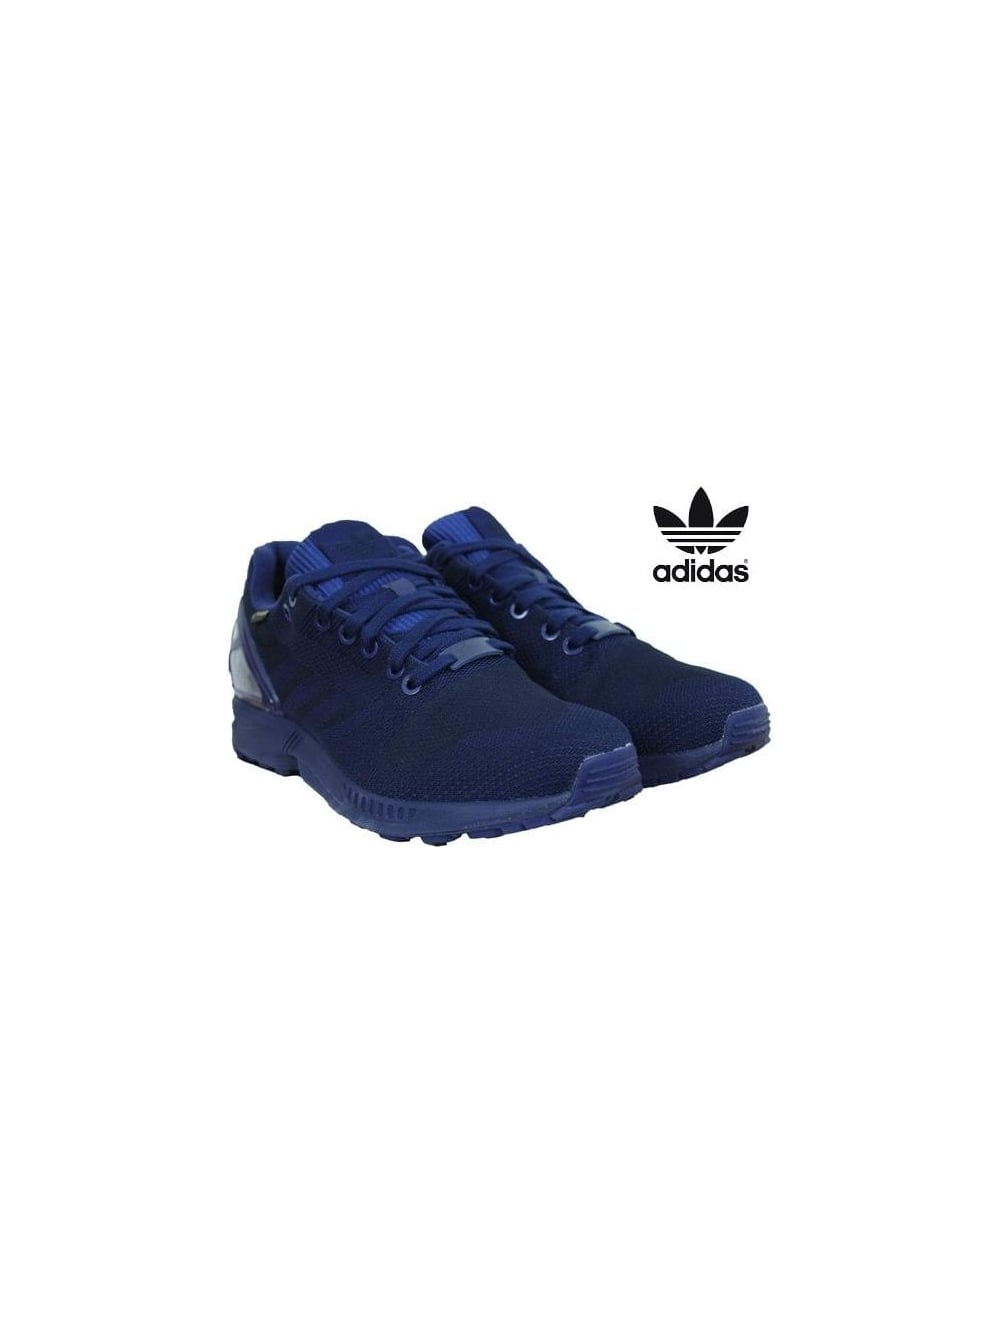 sale retailer 9bb2a 831aa ZX Flux Weave OG Gortex - Dark Blue